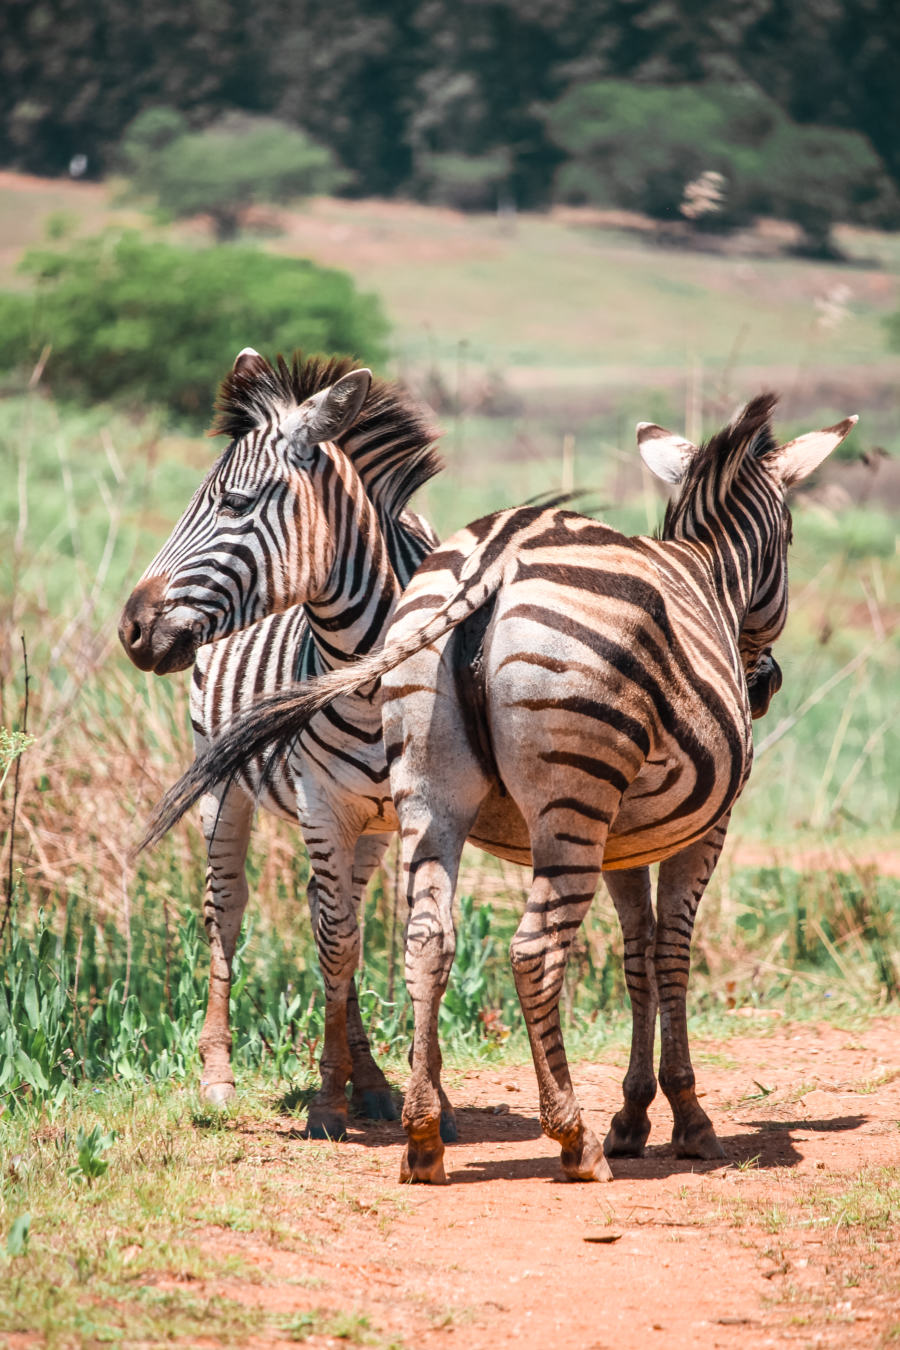 Two zebras in Mlilwane National Park in Swaziland